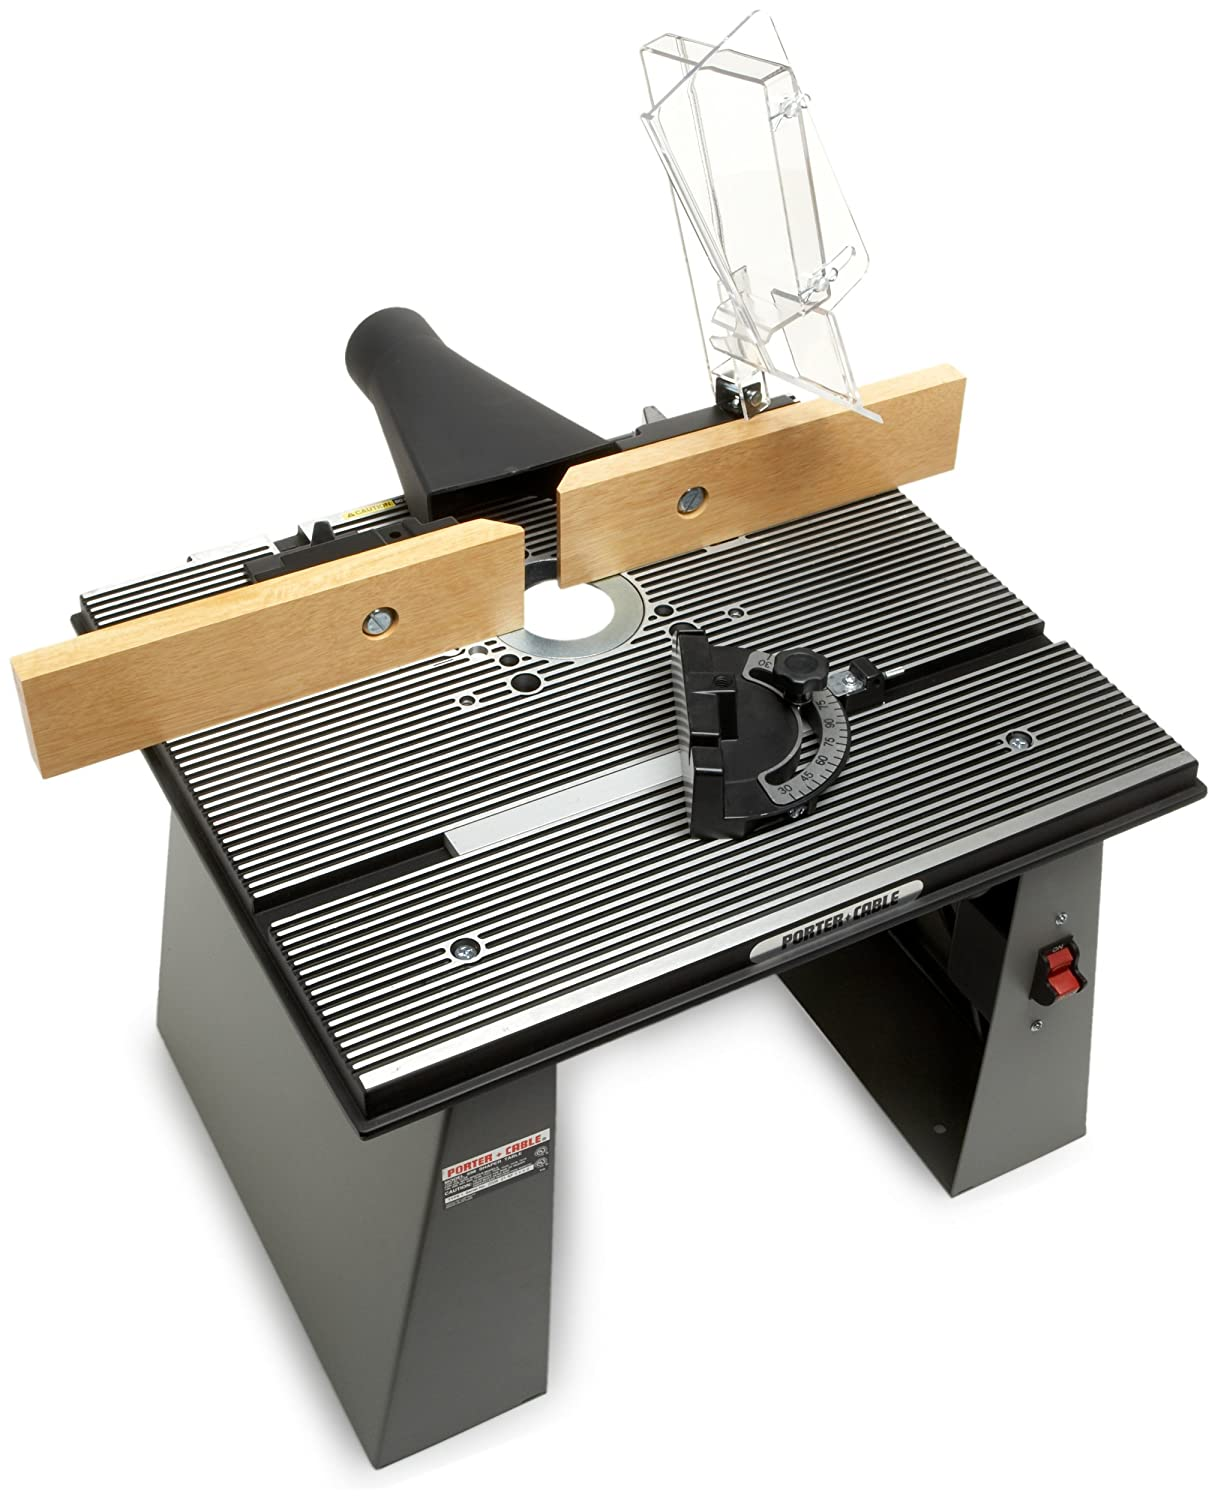 Porter cable 698 bench top router table portercable router table porter cable 698 bench top router table portercable router table amazon greentooth Gallery